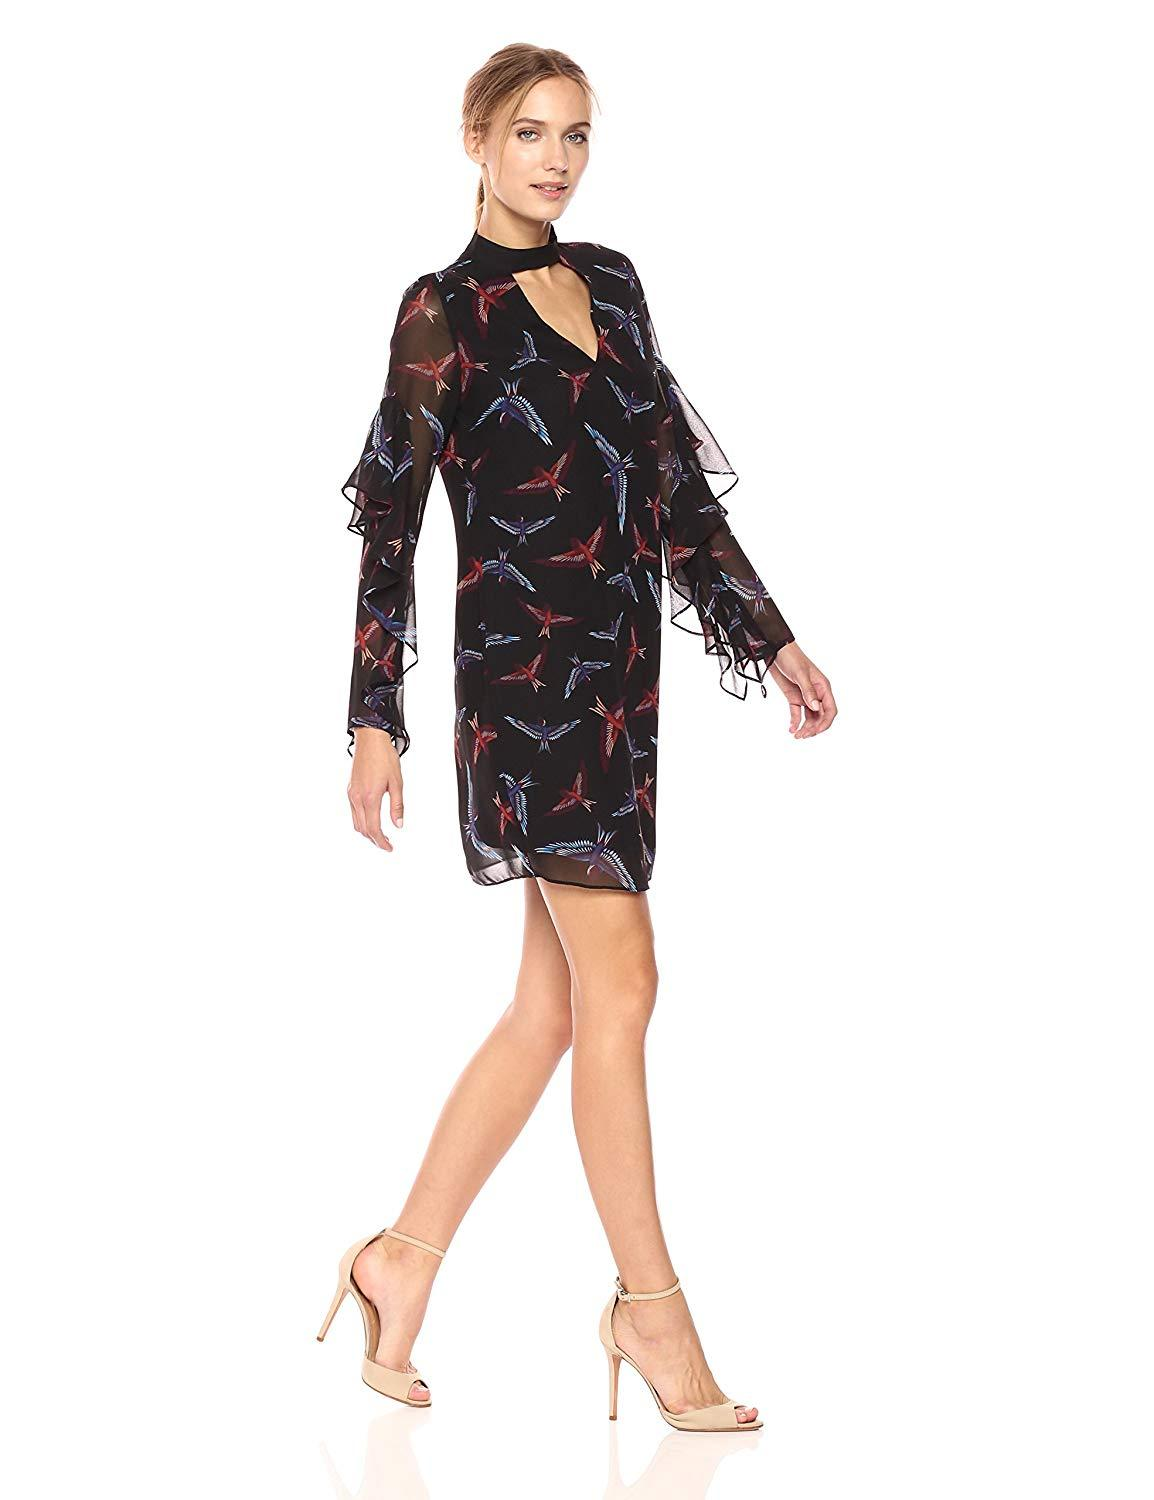 Sam Edelman - 64H091 Bird Print Choker Cutout Chiffon Dress In Black and Print